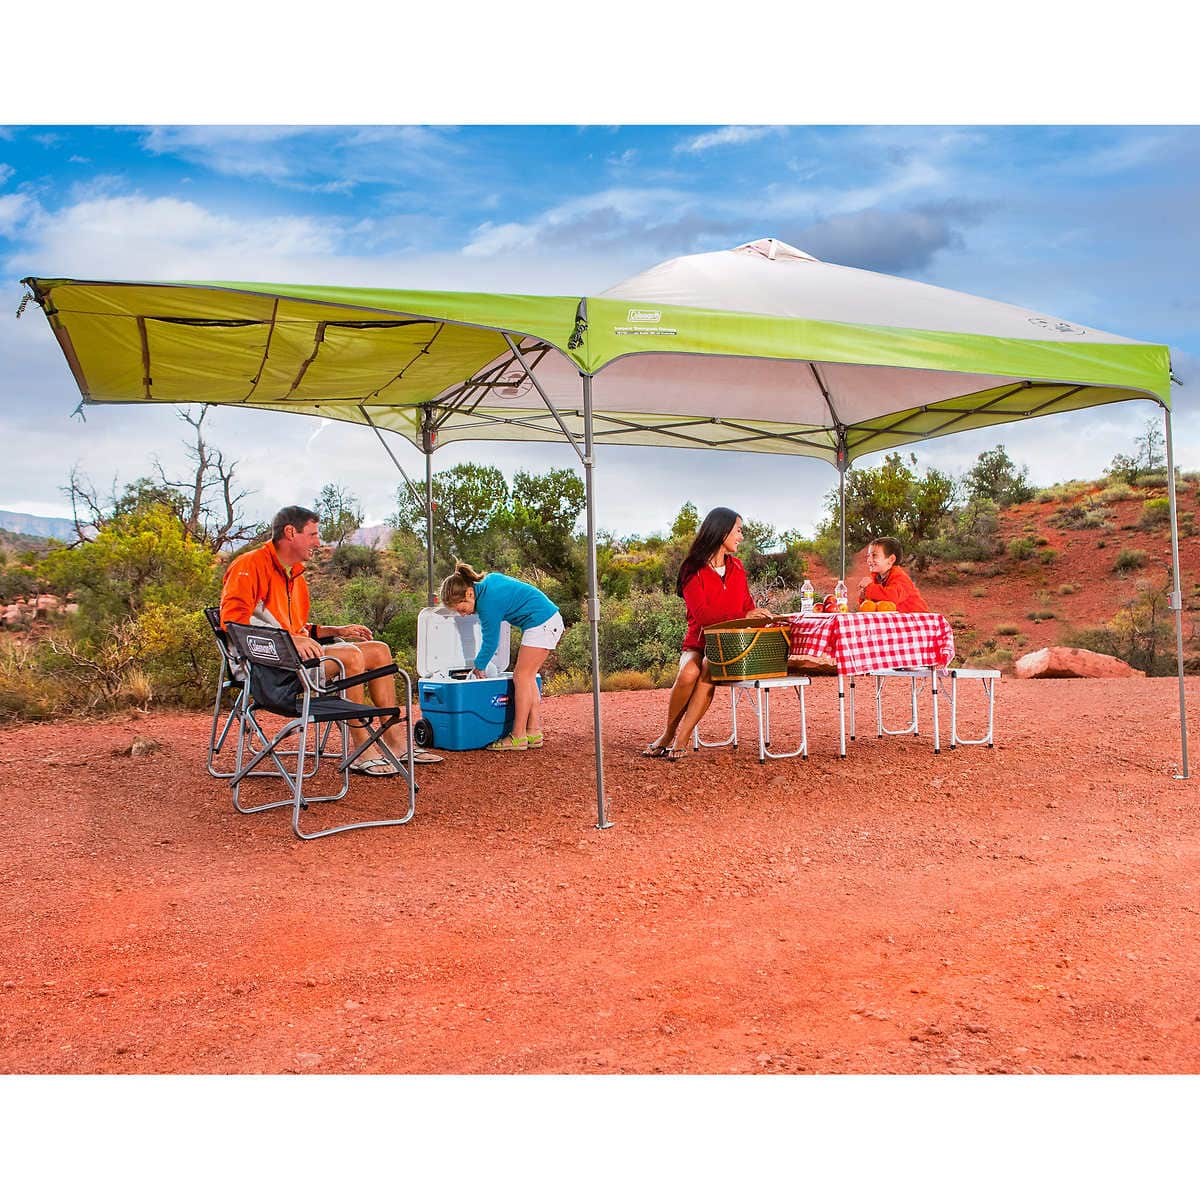 Coleman 10 x 10 Canopy with Swing Wall Costco $99